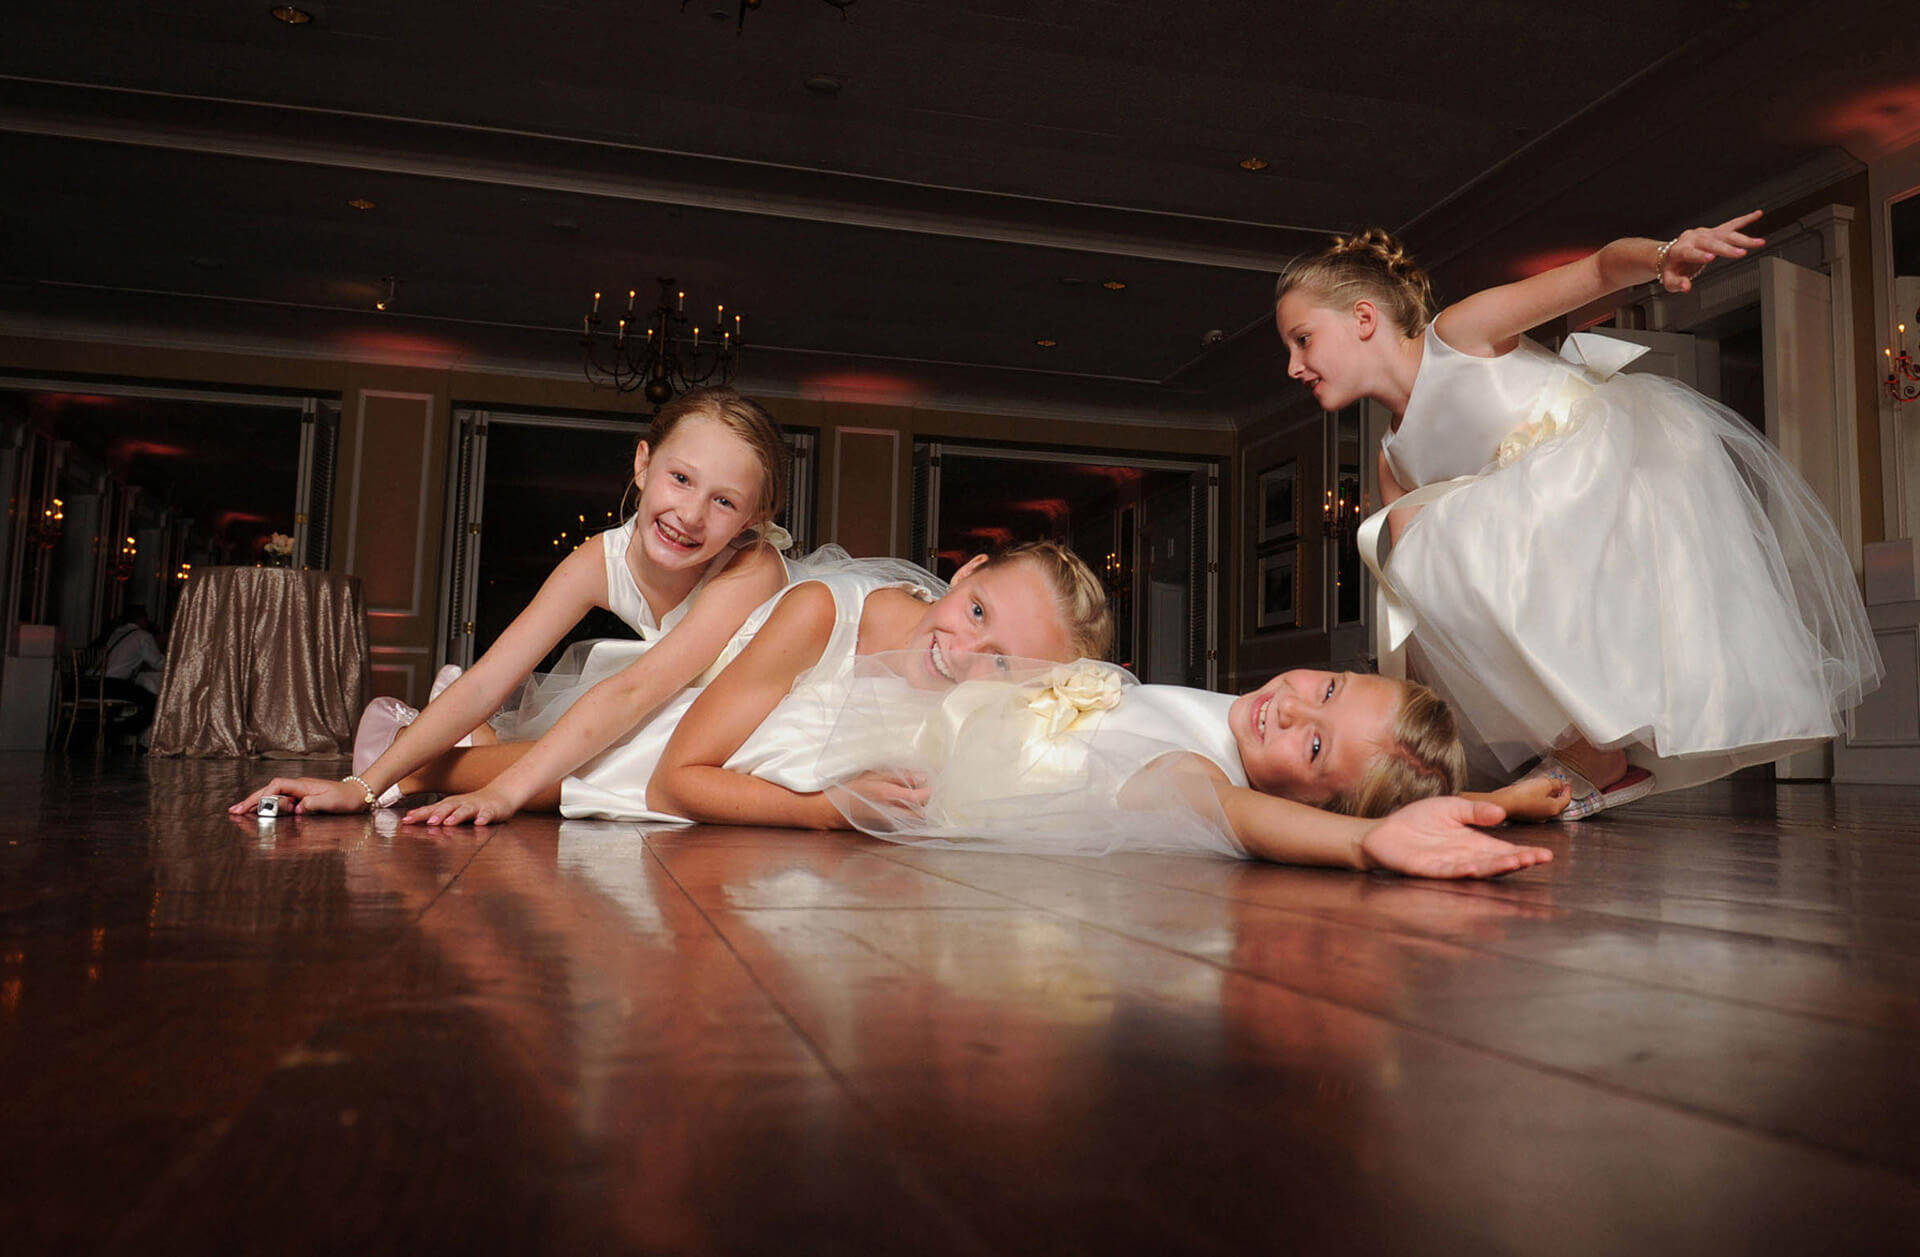 The flower girls have a spontaneous pile on in the middle of the dance floor at the Oakland Hills Country Club in Birmingham, Michigan wedding reception in this fun candid moment captured by one of the most affordable Michigan wedding photographers in Metro Detroit, Michigan.